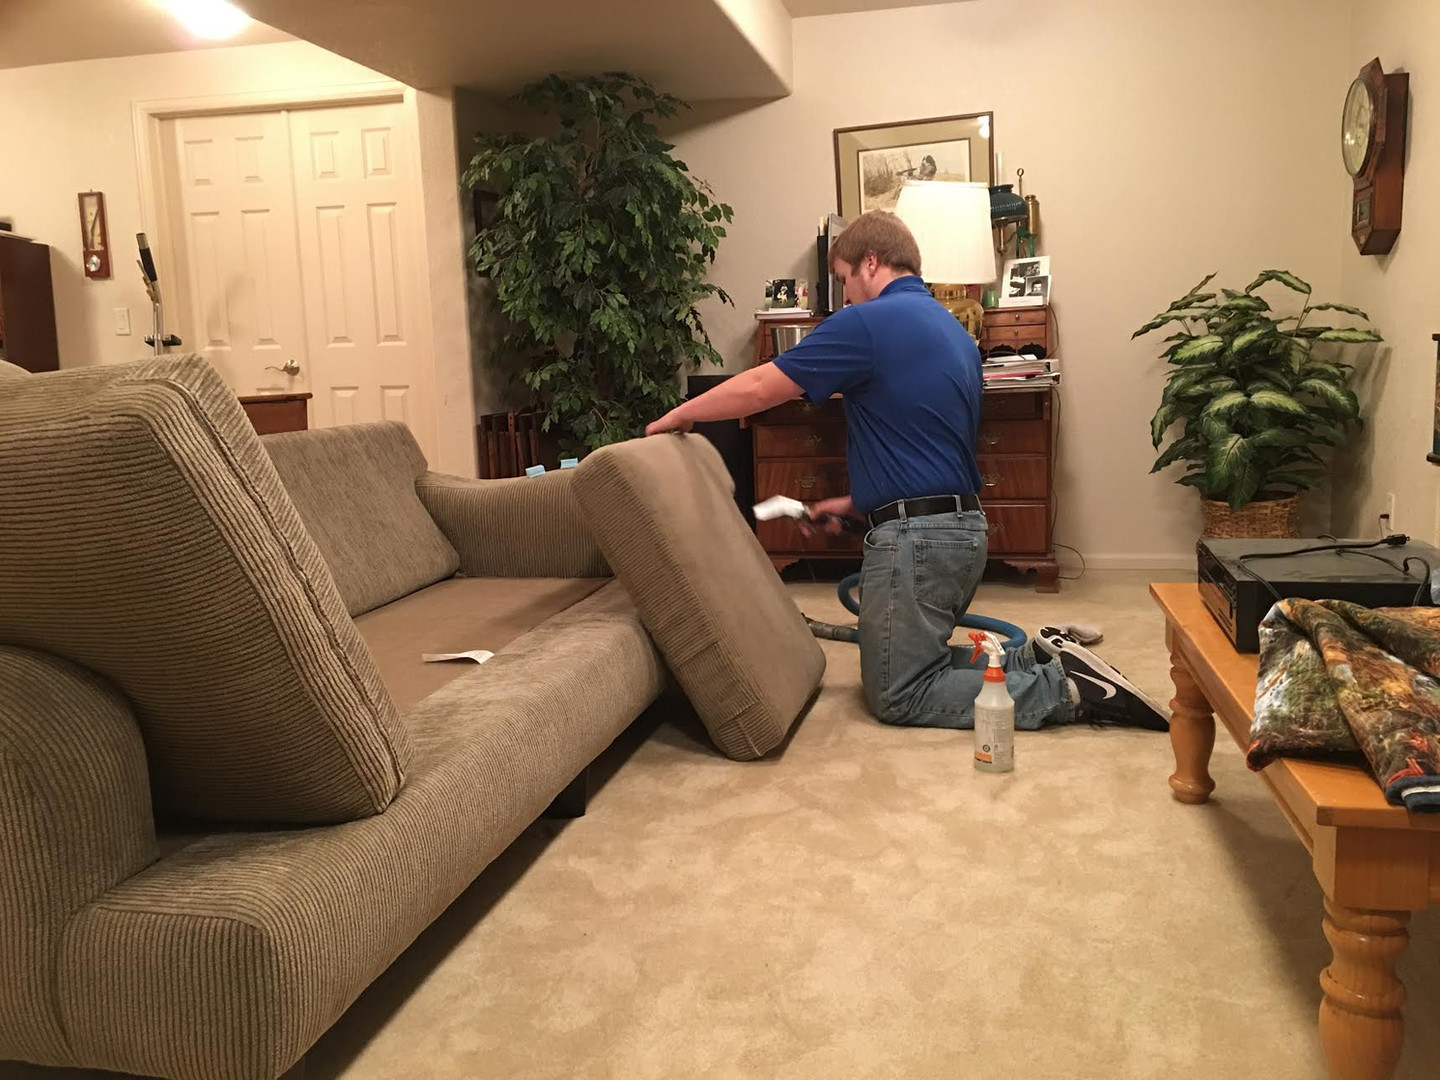 AA Super Klean upholstery cleaning in Casper, Wyoming